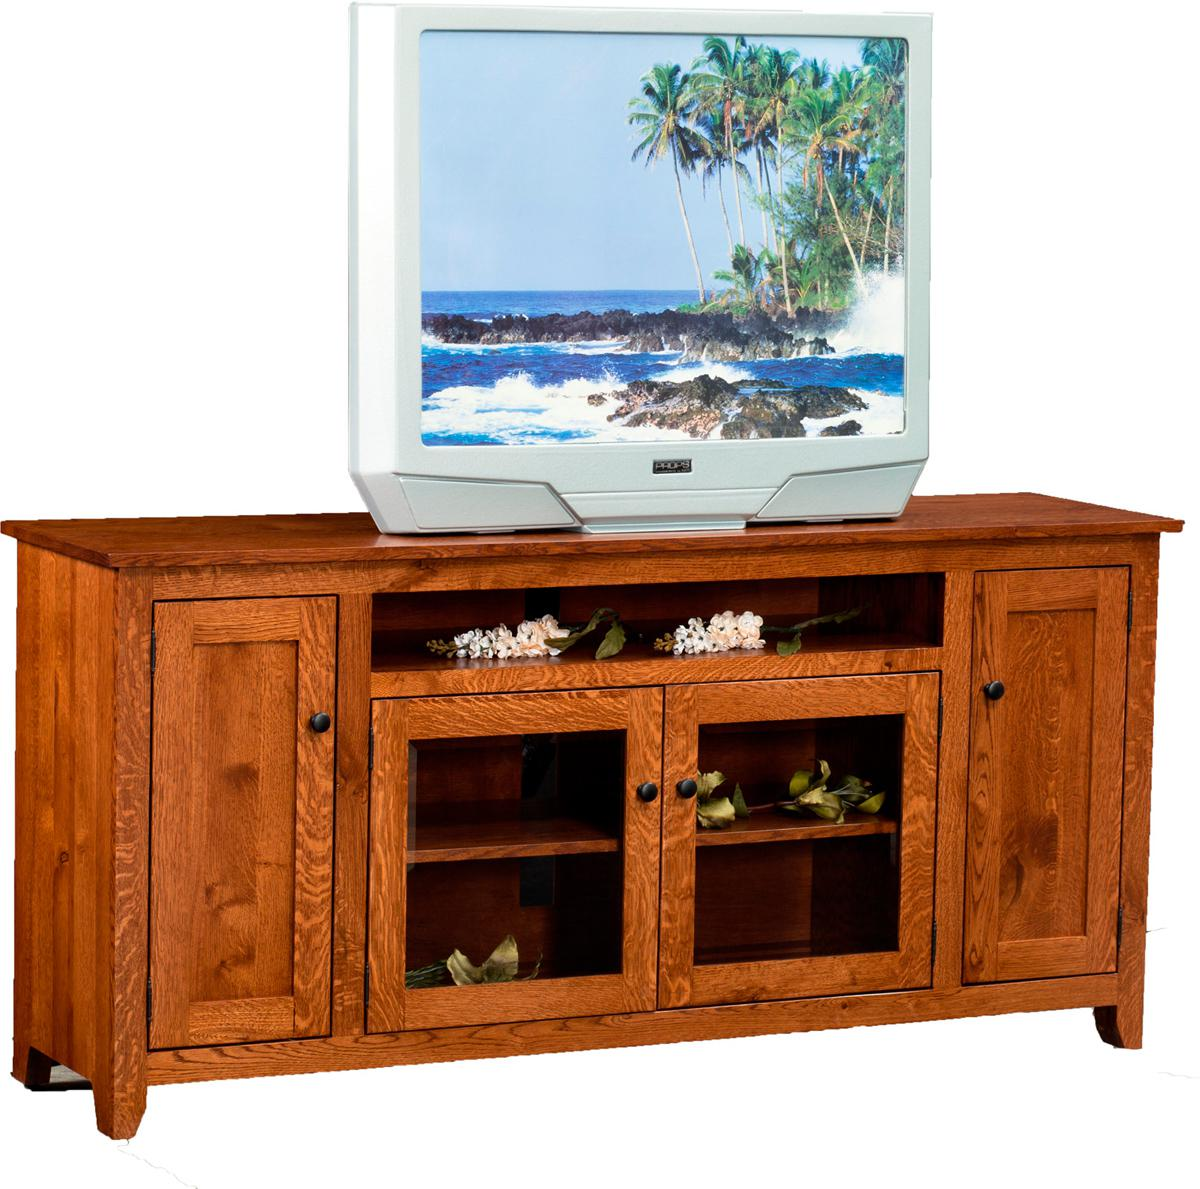 Modern Mission TV Stand - wide